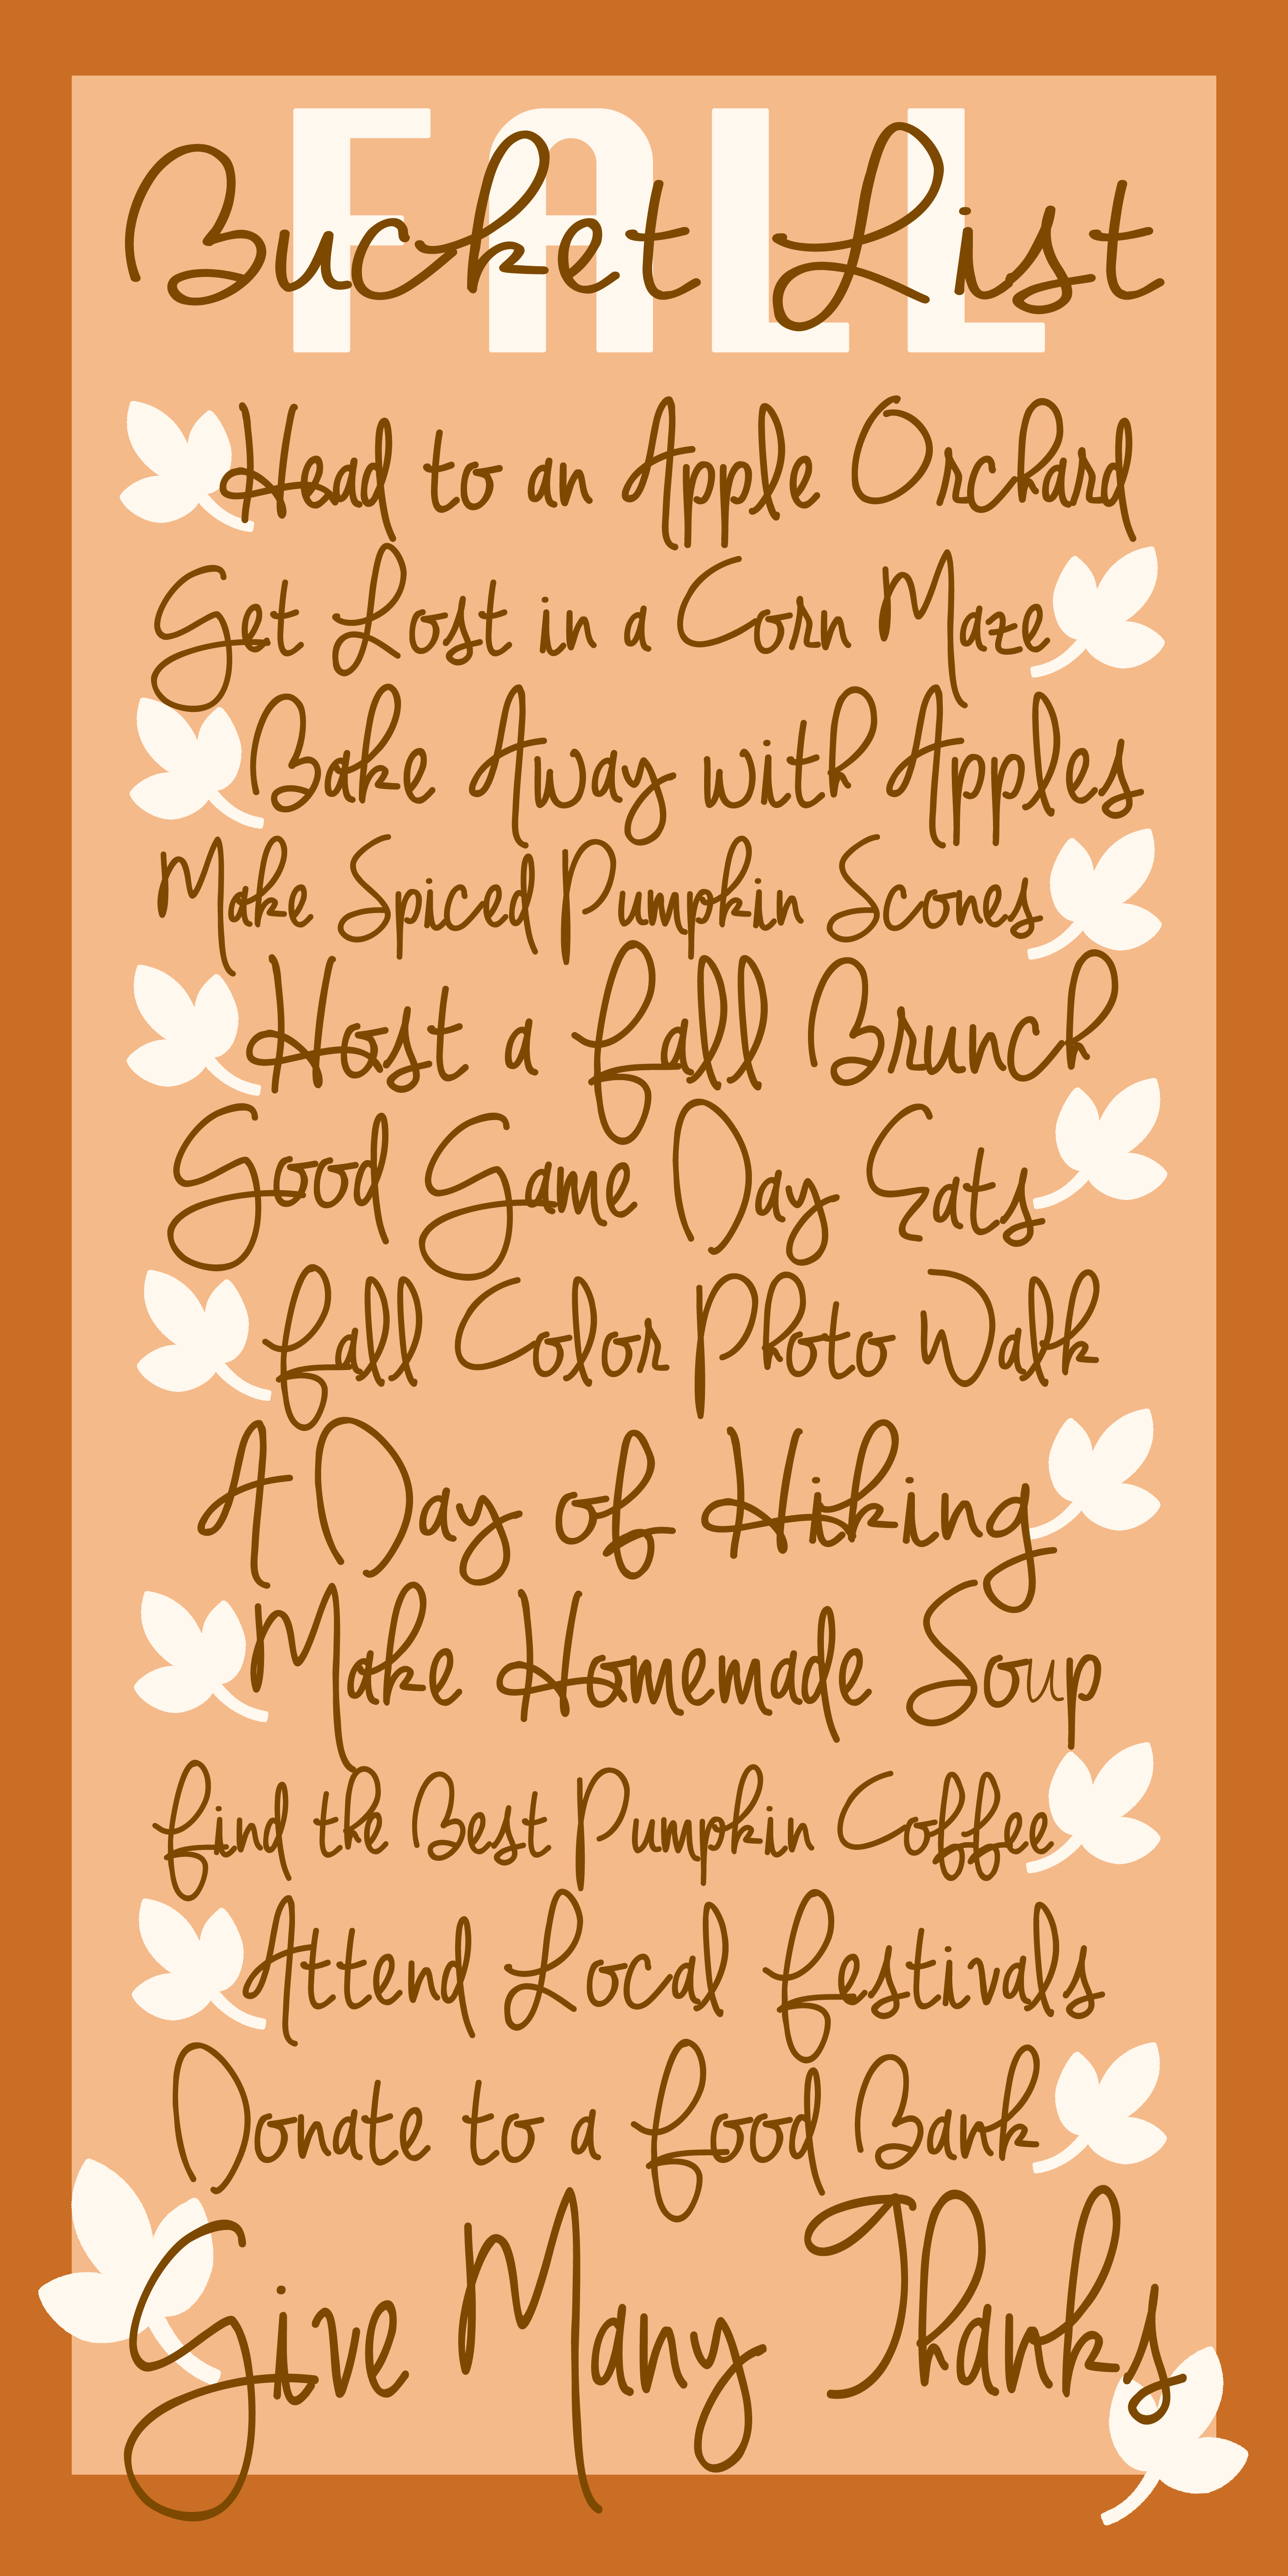 Fall Bucket List - Don't let time get the better of you! Make sure to enjoy some classic fall activities! {The Love Nerds} #fallfun #dateideas